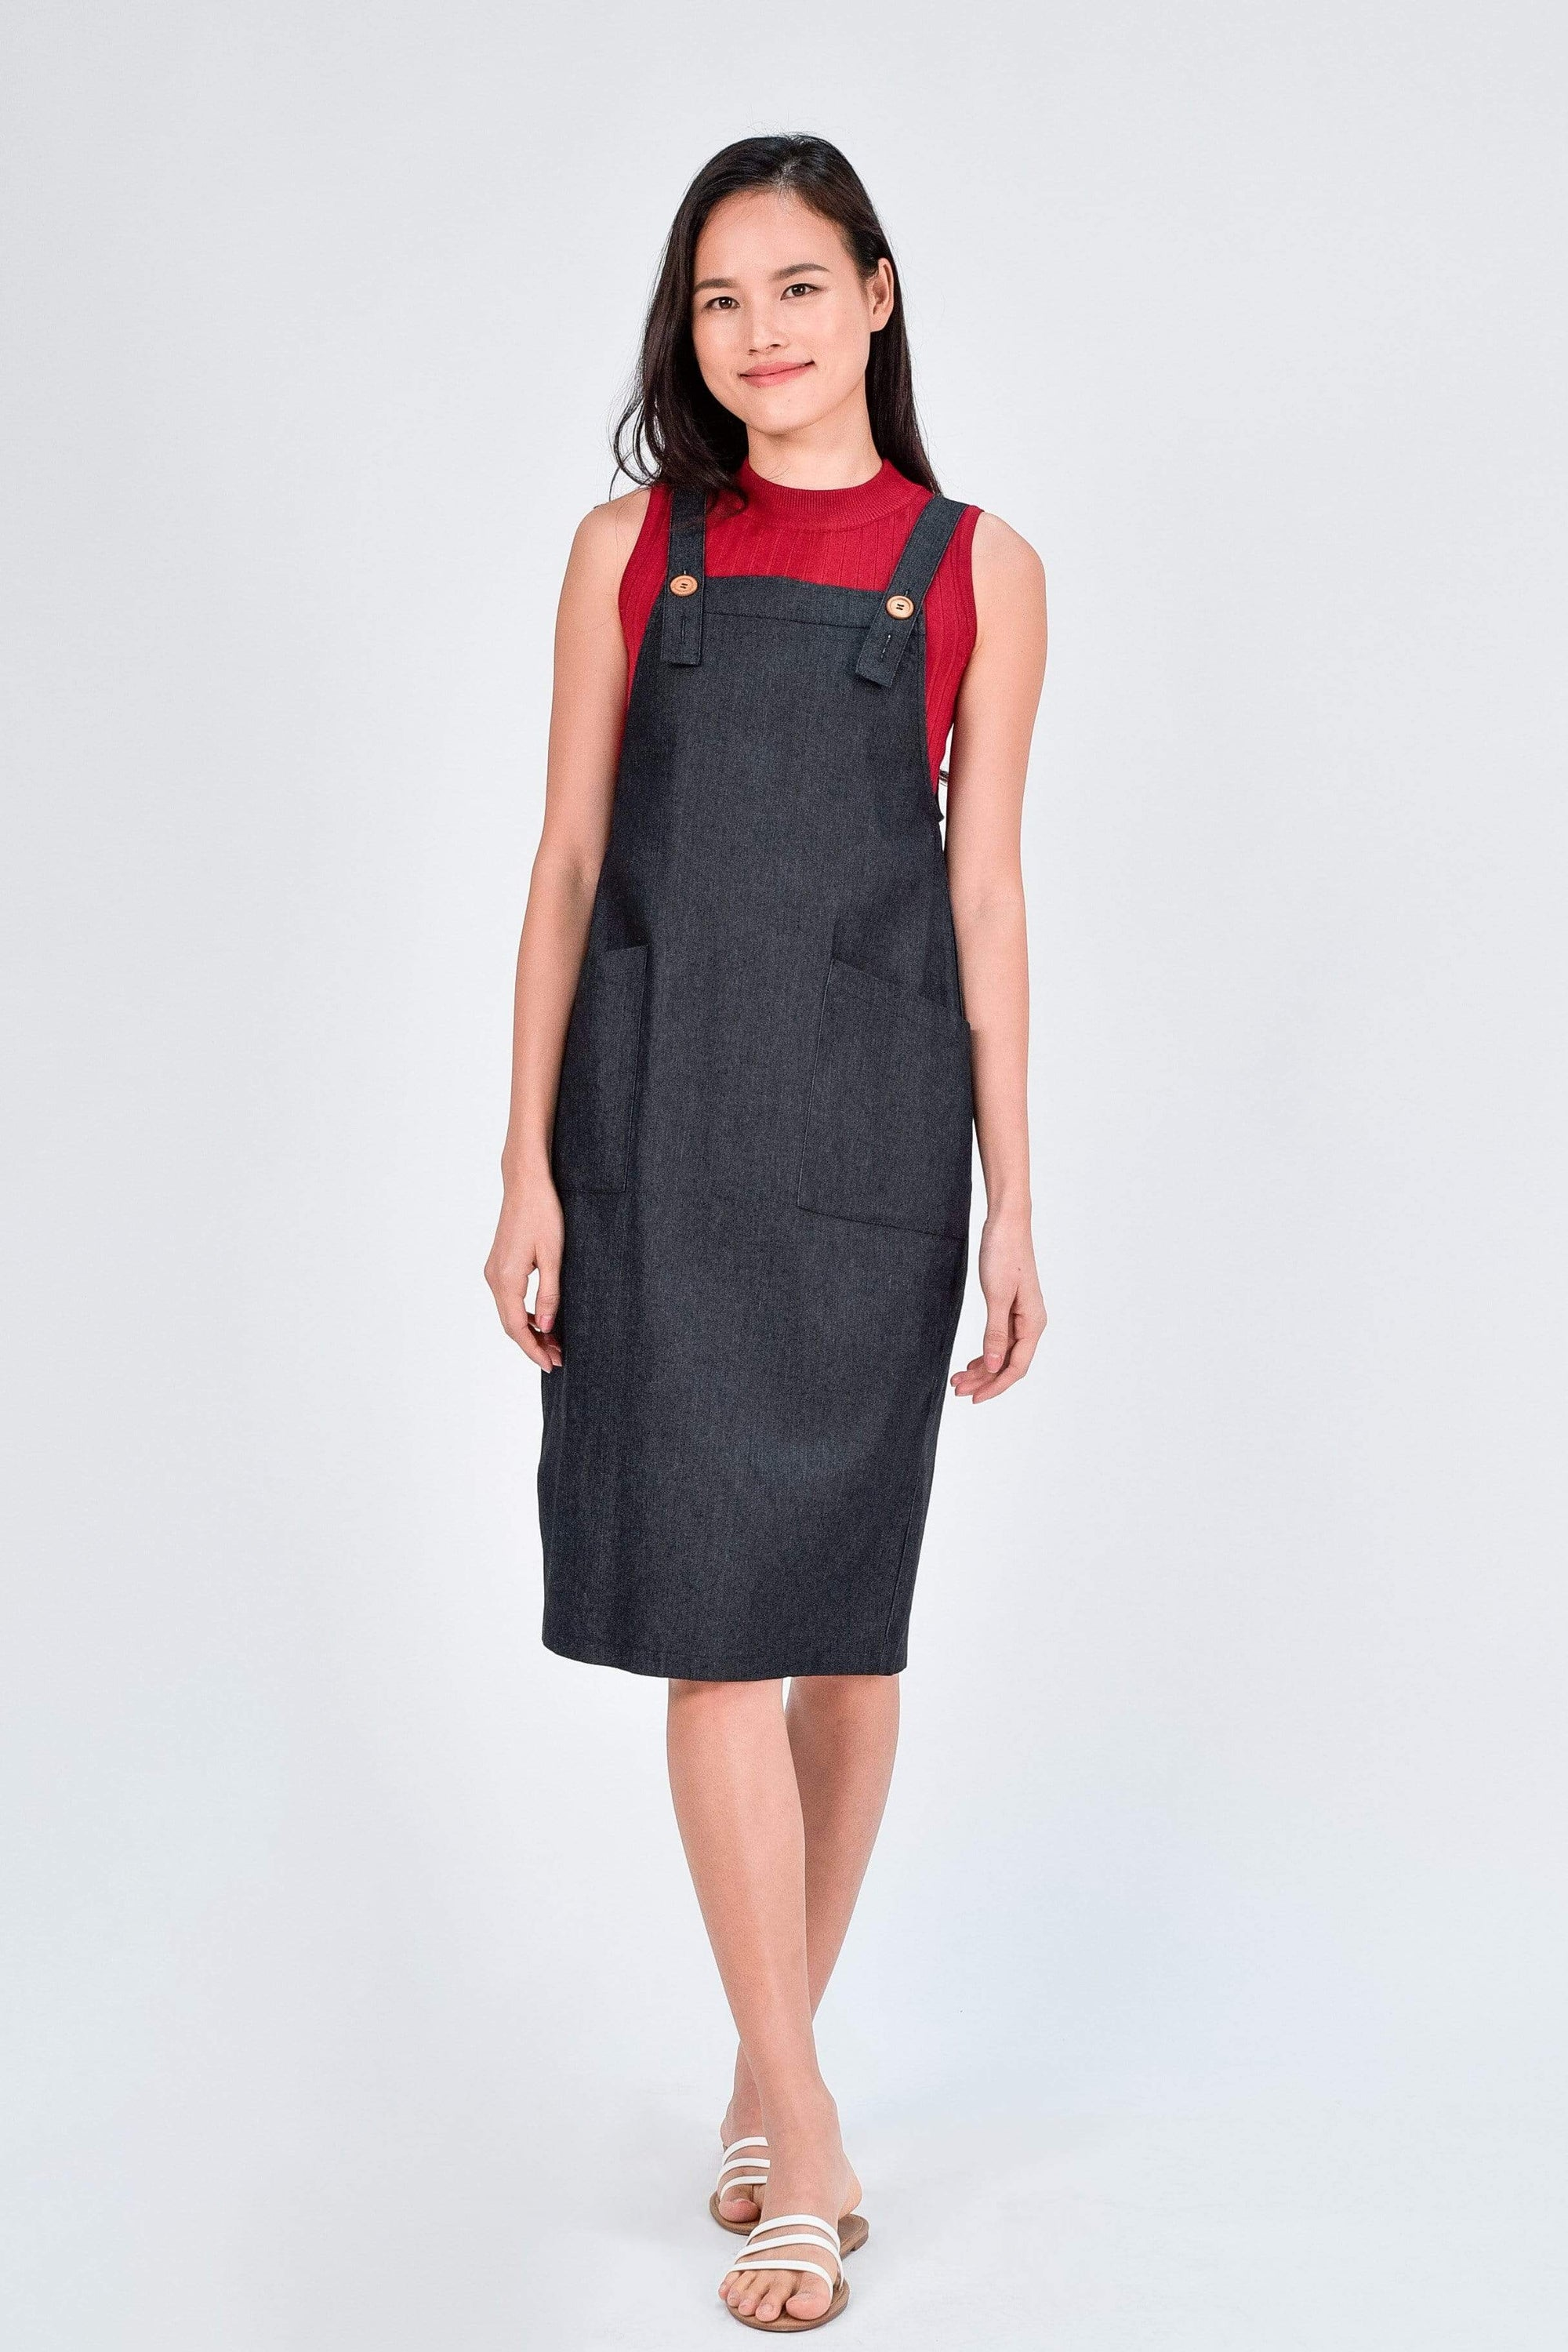 RAINIE DENIM DUNGAREE DRESS IN BLACK